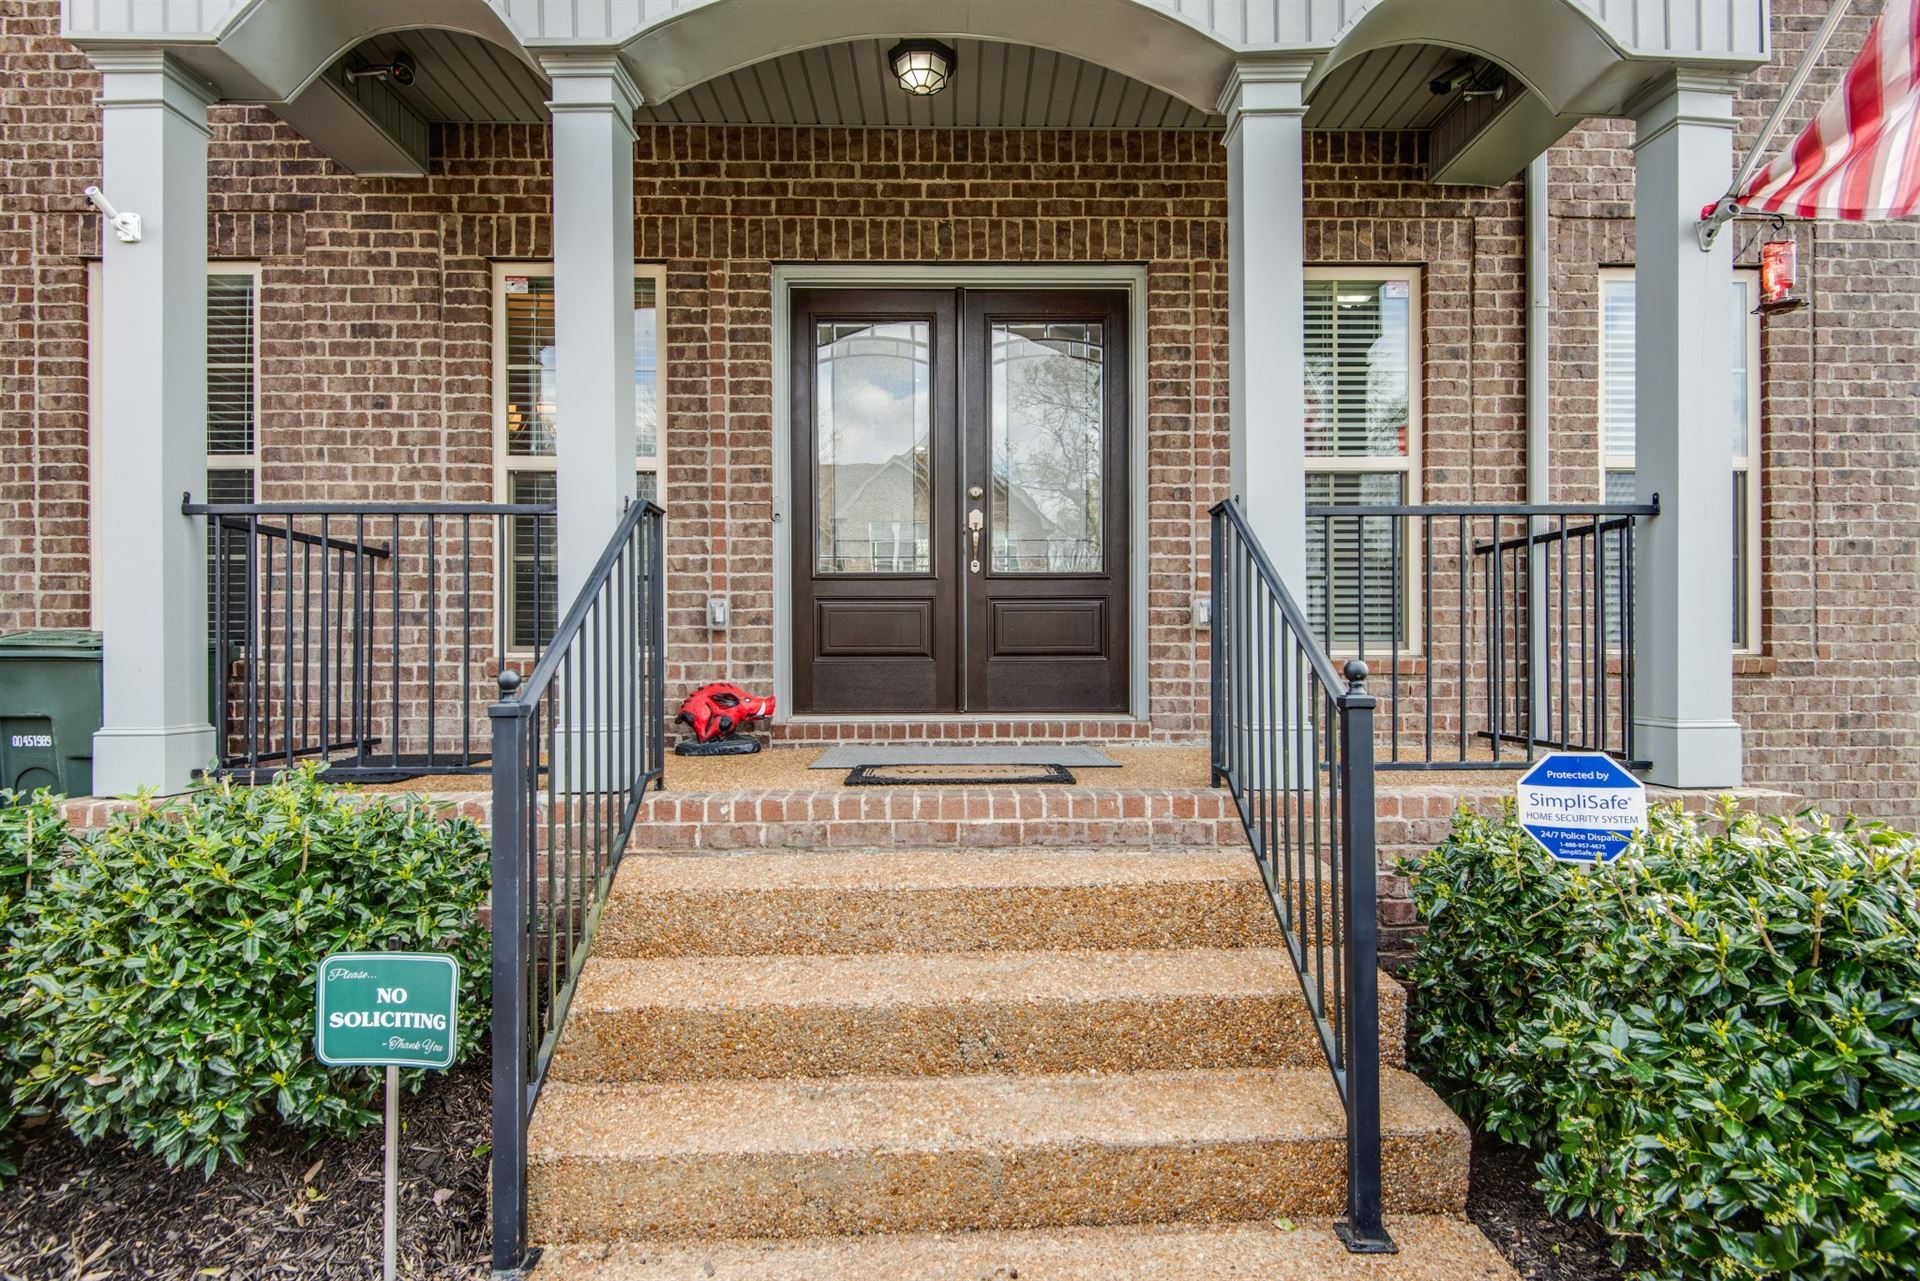 Photo of 8299 Tapoco Ln, Brentwood, TN 37027 (MLS # 2191121)